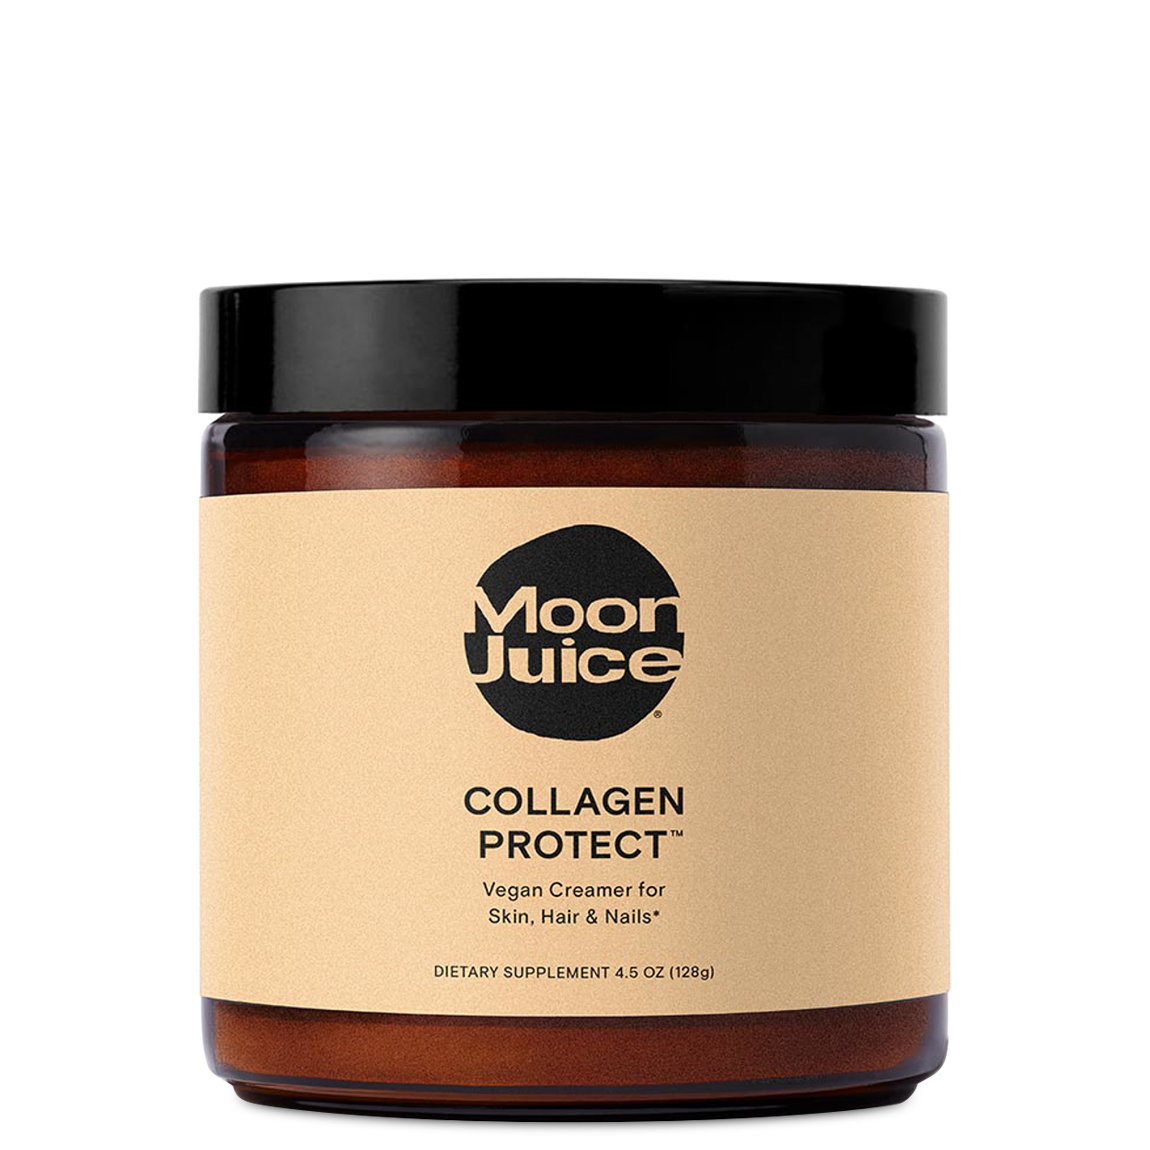 Moon Juice Collagen Protect 4.5 oz alternative view 1 - product swatch.